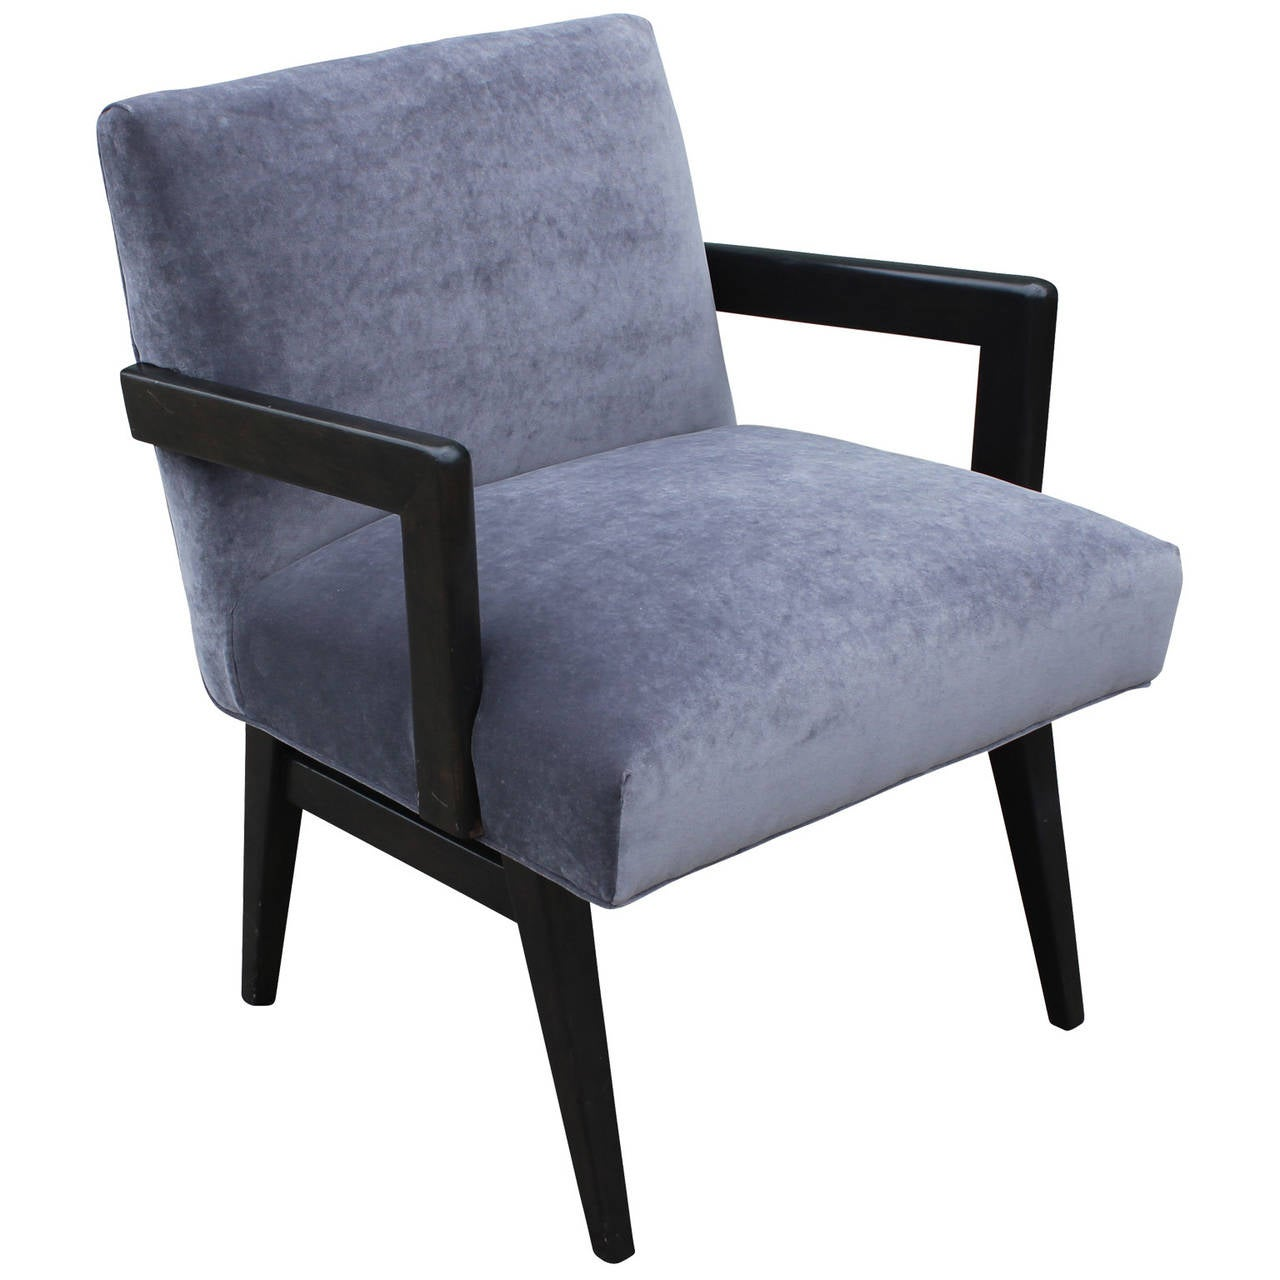 grey modern armchairs kettler garden chair covers mid century velvet armchair in the style of